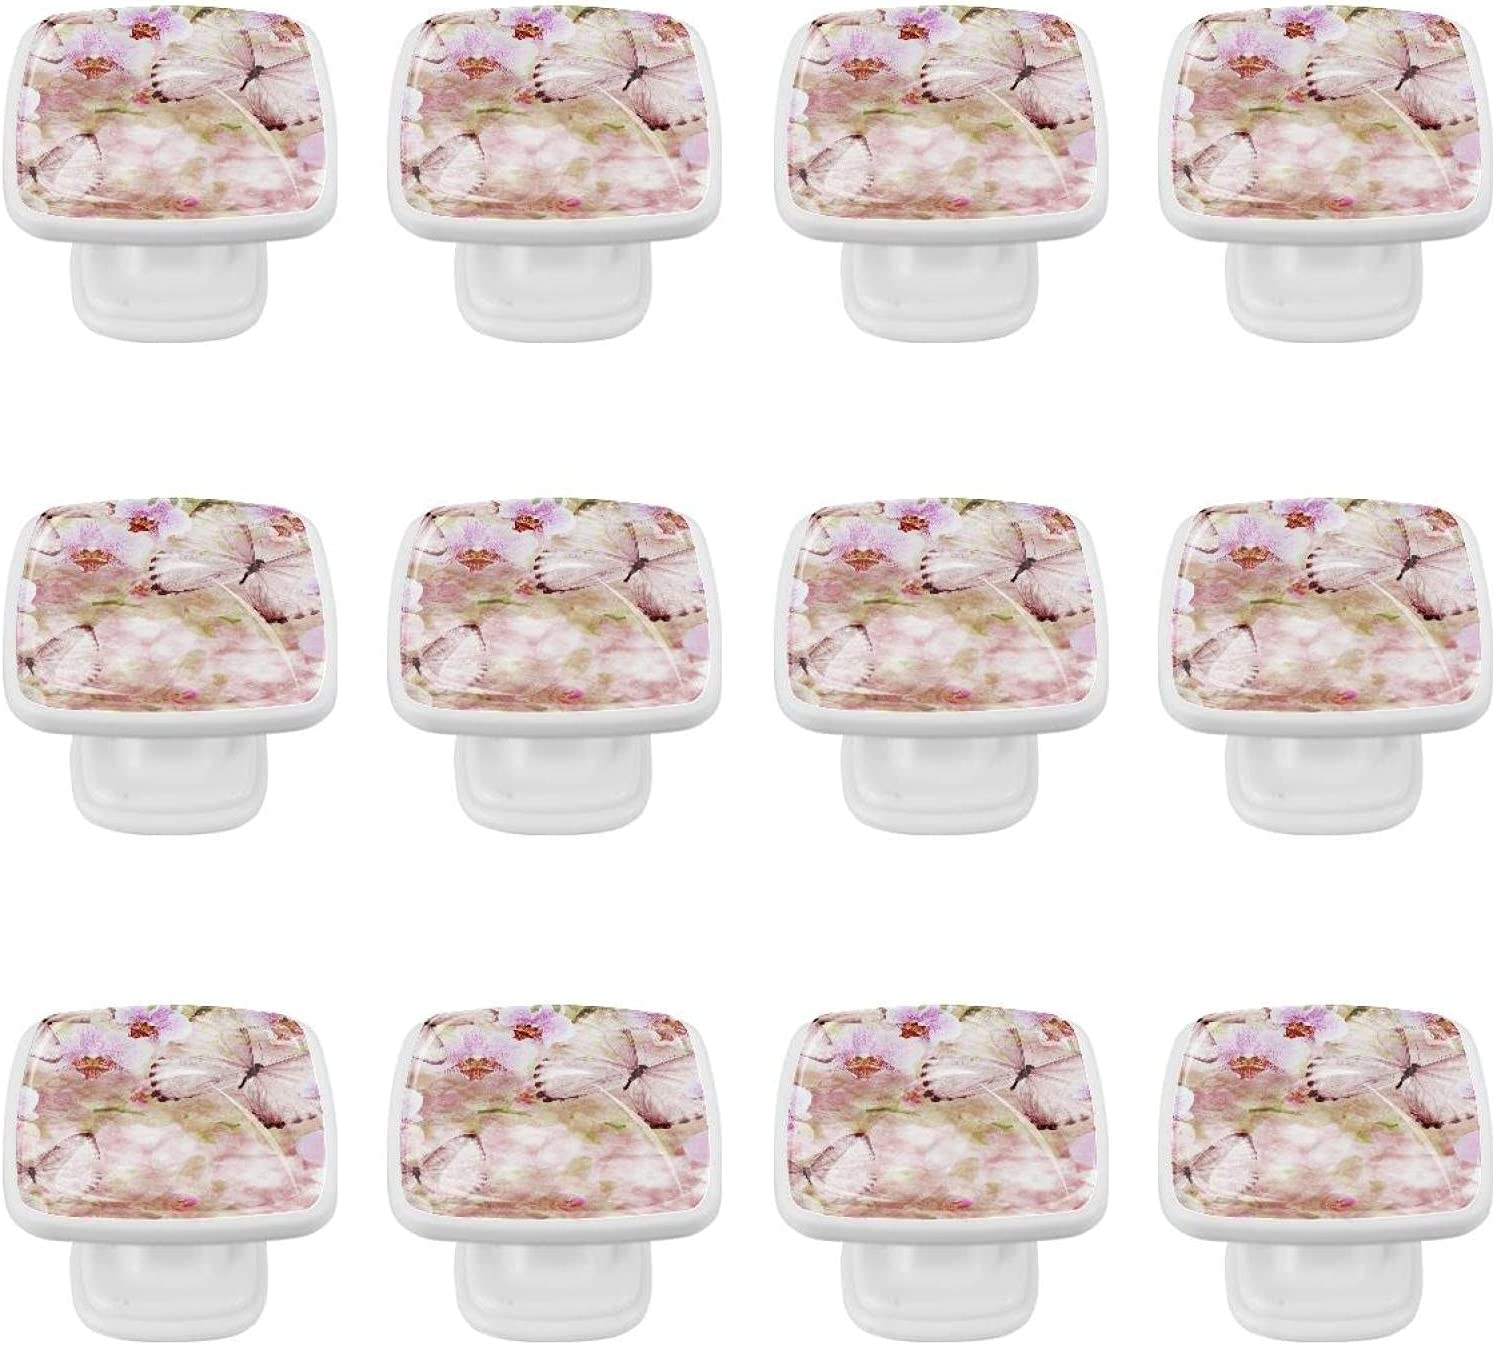 Kitchen Cabinet Los Angeles Direct sale of manufacturer Mall Knobs - Butterfly Inch Orchid Pink 1.18 Flower